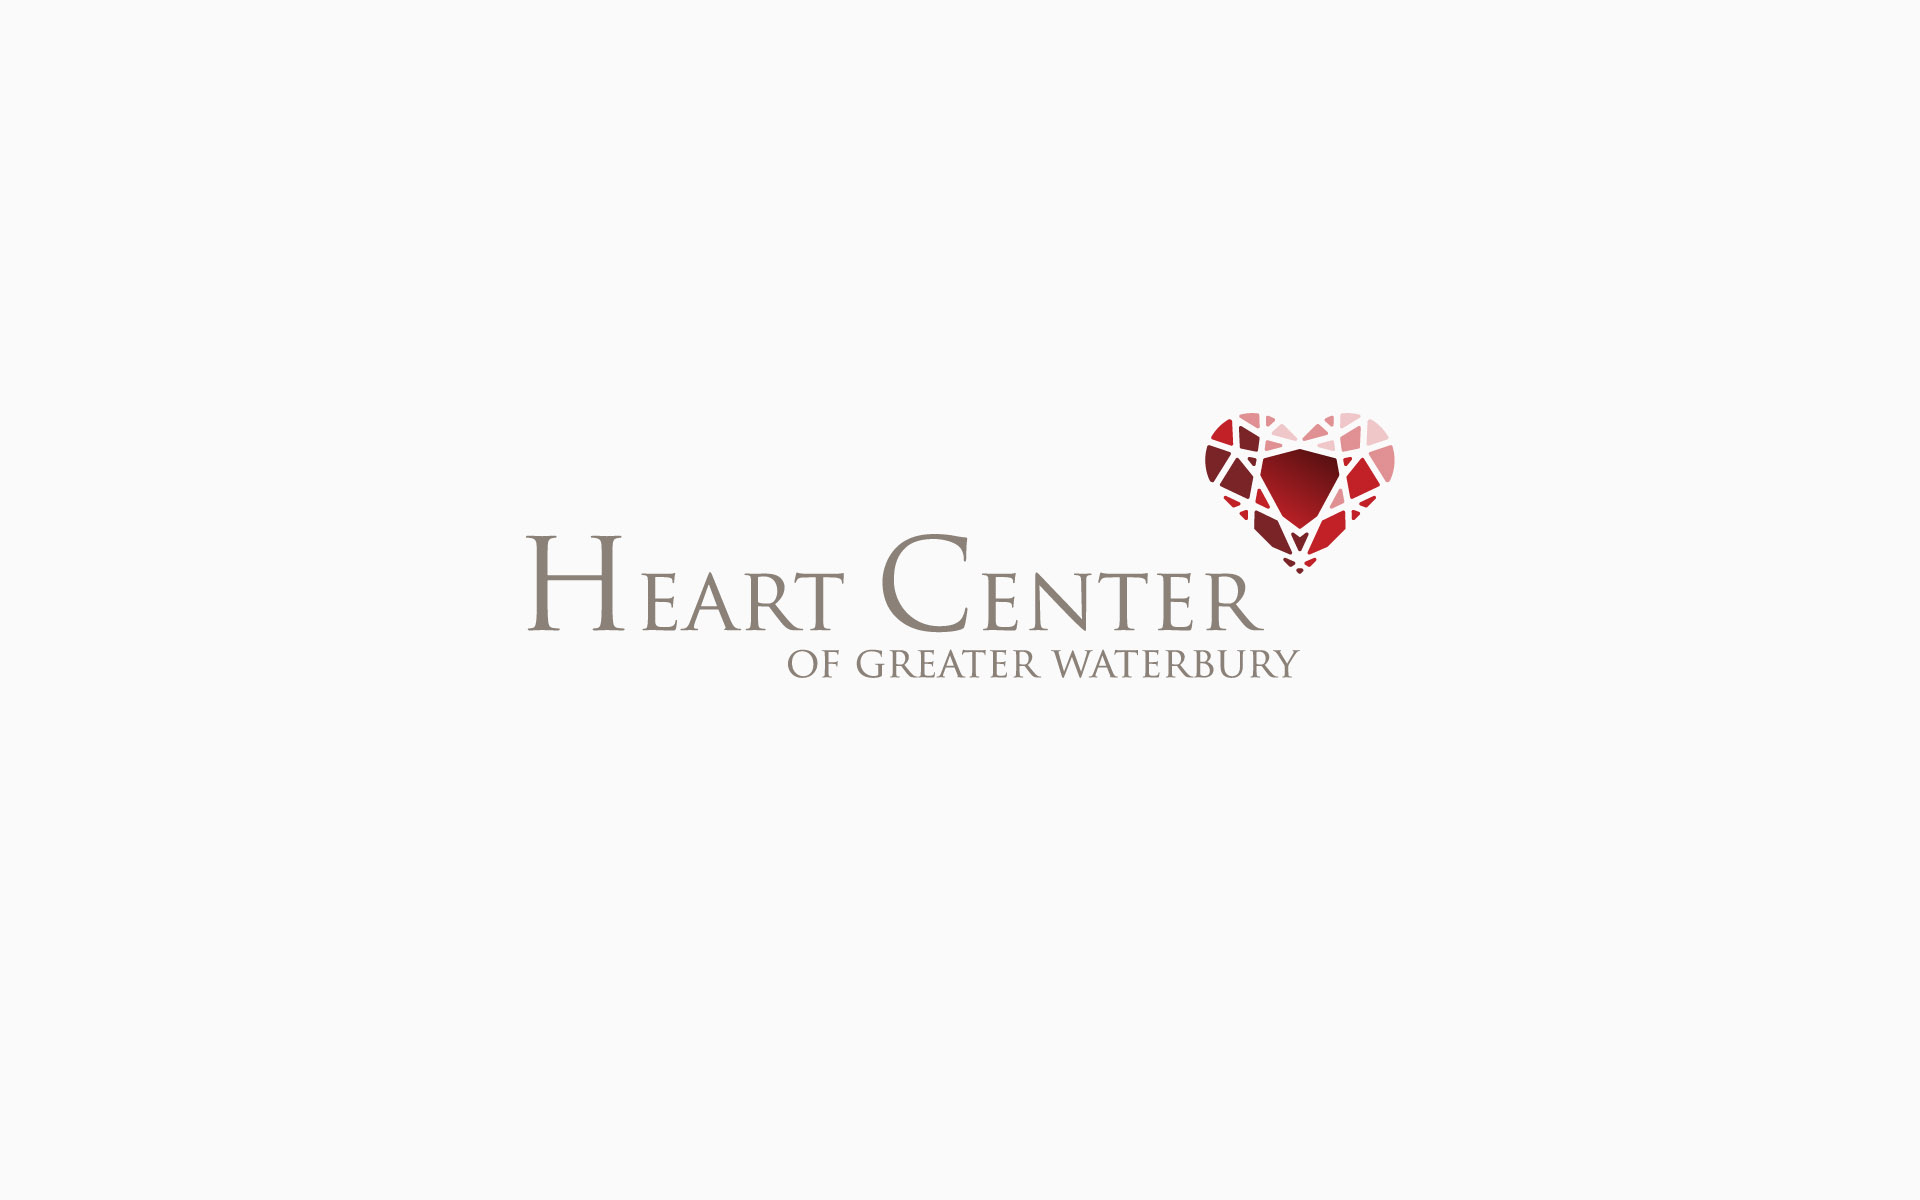 Heart Center of Greater Waterbury Brand Identity